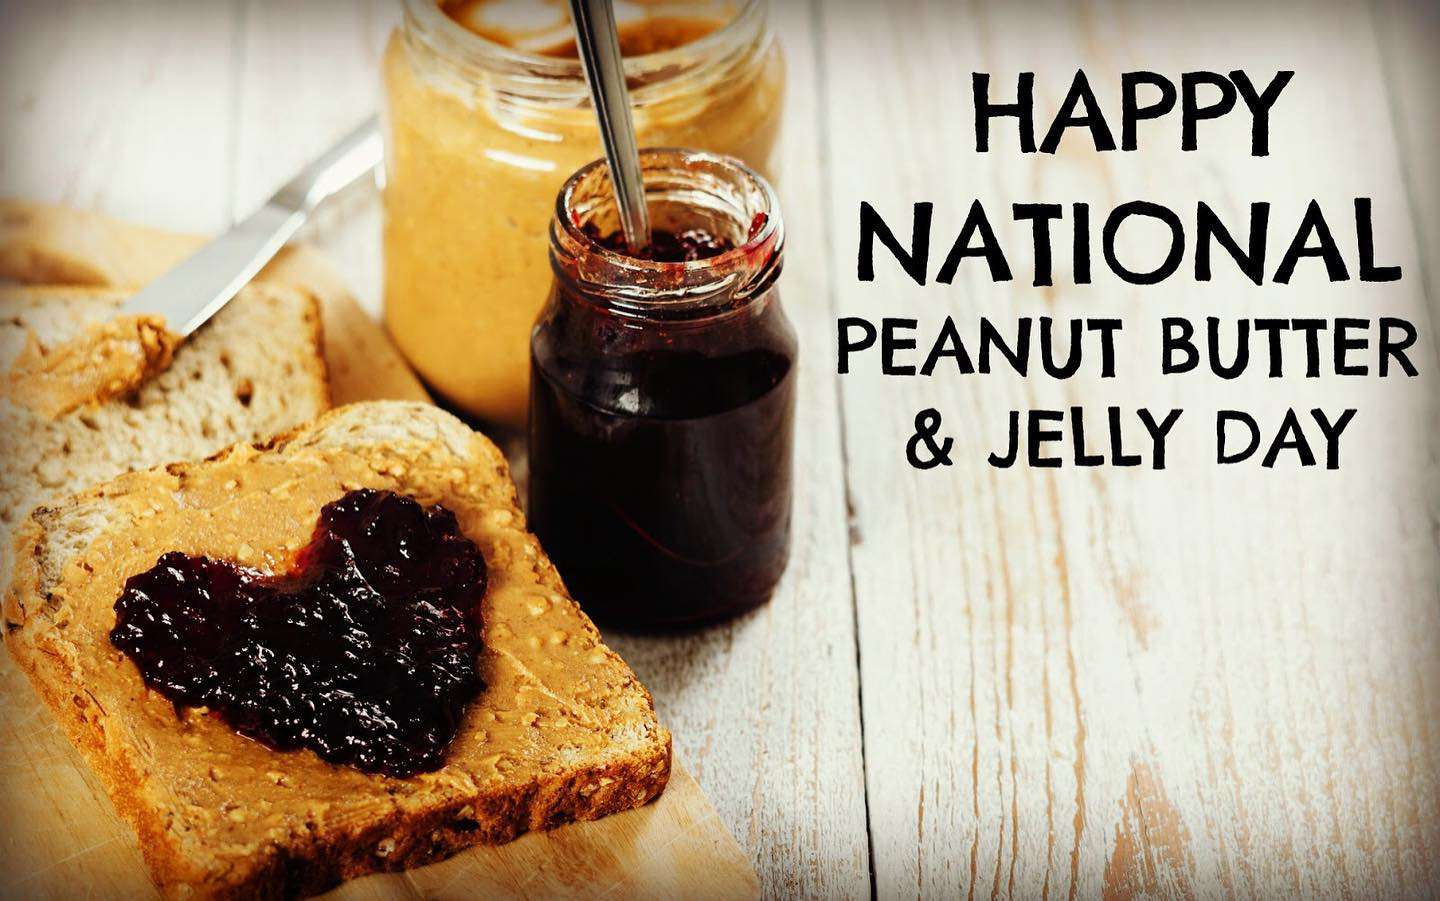 National Peanut Butter and Jelly Day Wishes Awesome Picture